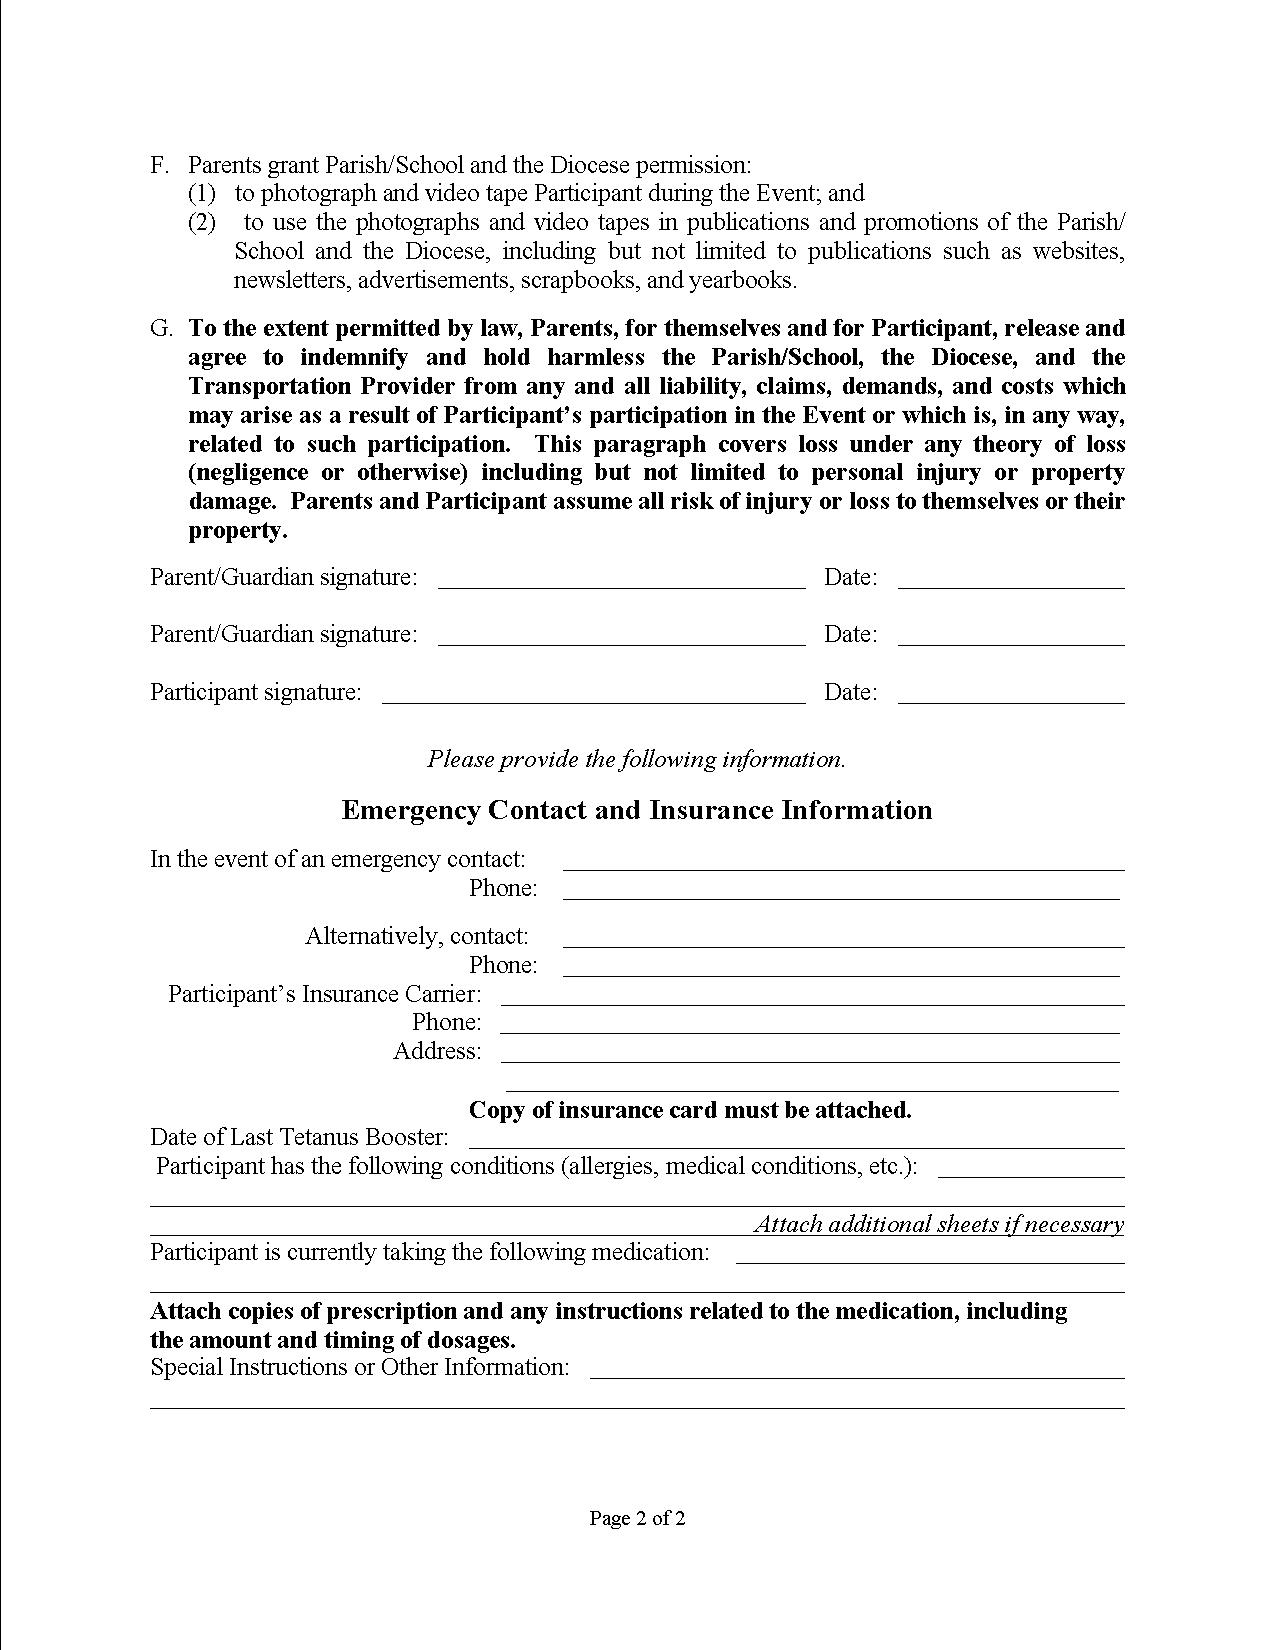 Emergency medical consent form free printable documents for Parental medical consent form template